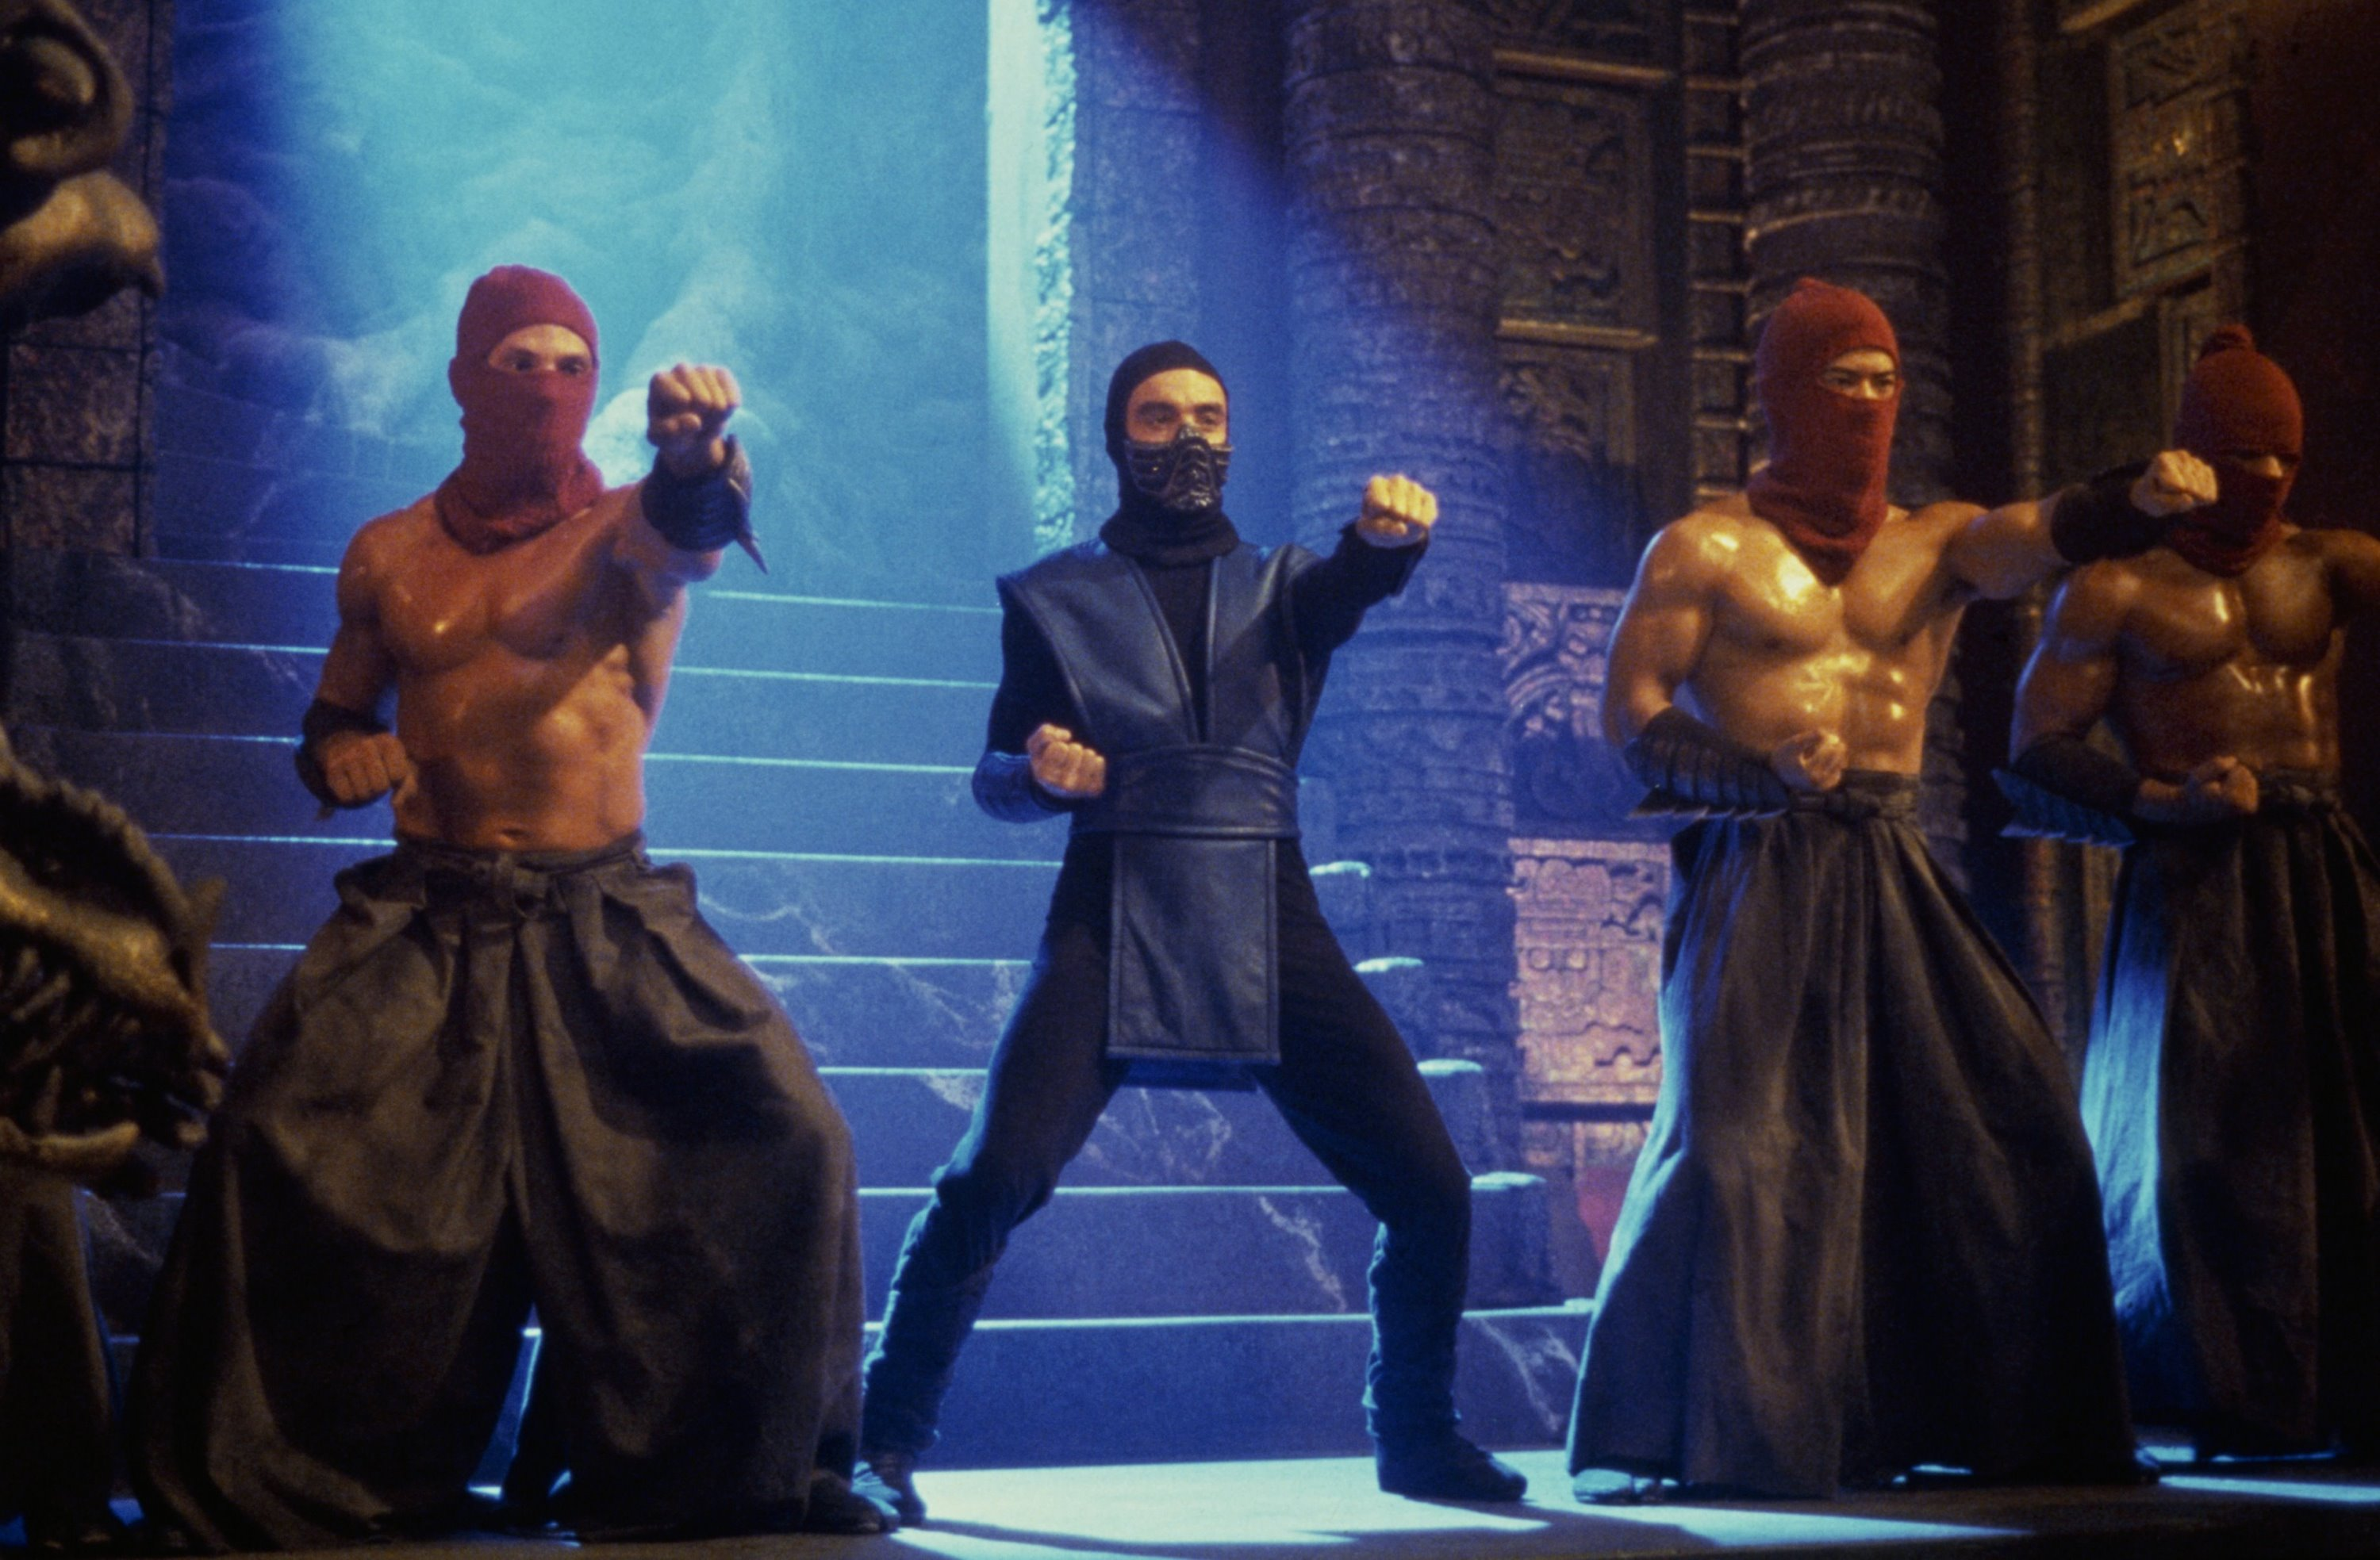 Mortal Kombat Movie Casts Sonya, Kano And Others